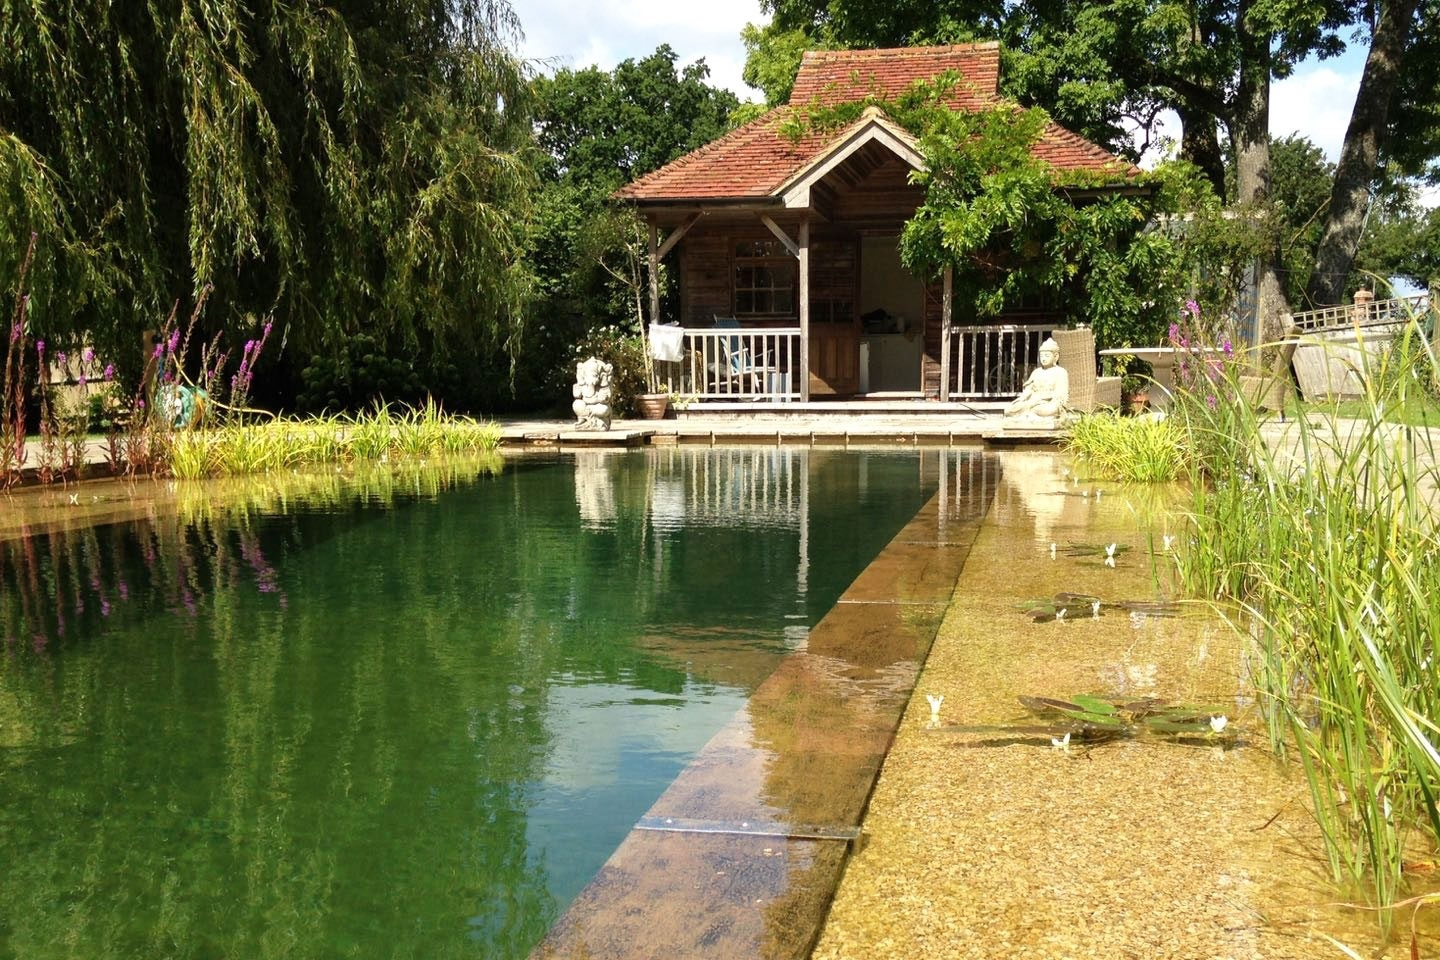 Gartenart | Portfolio | Natural pool, Hampshire